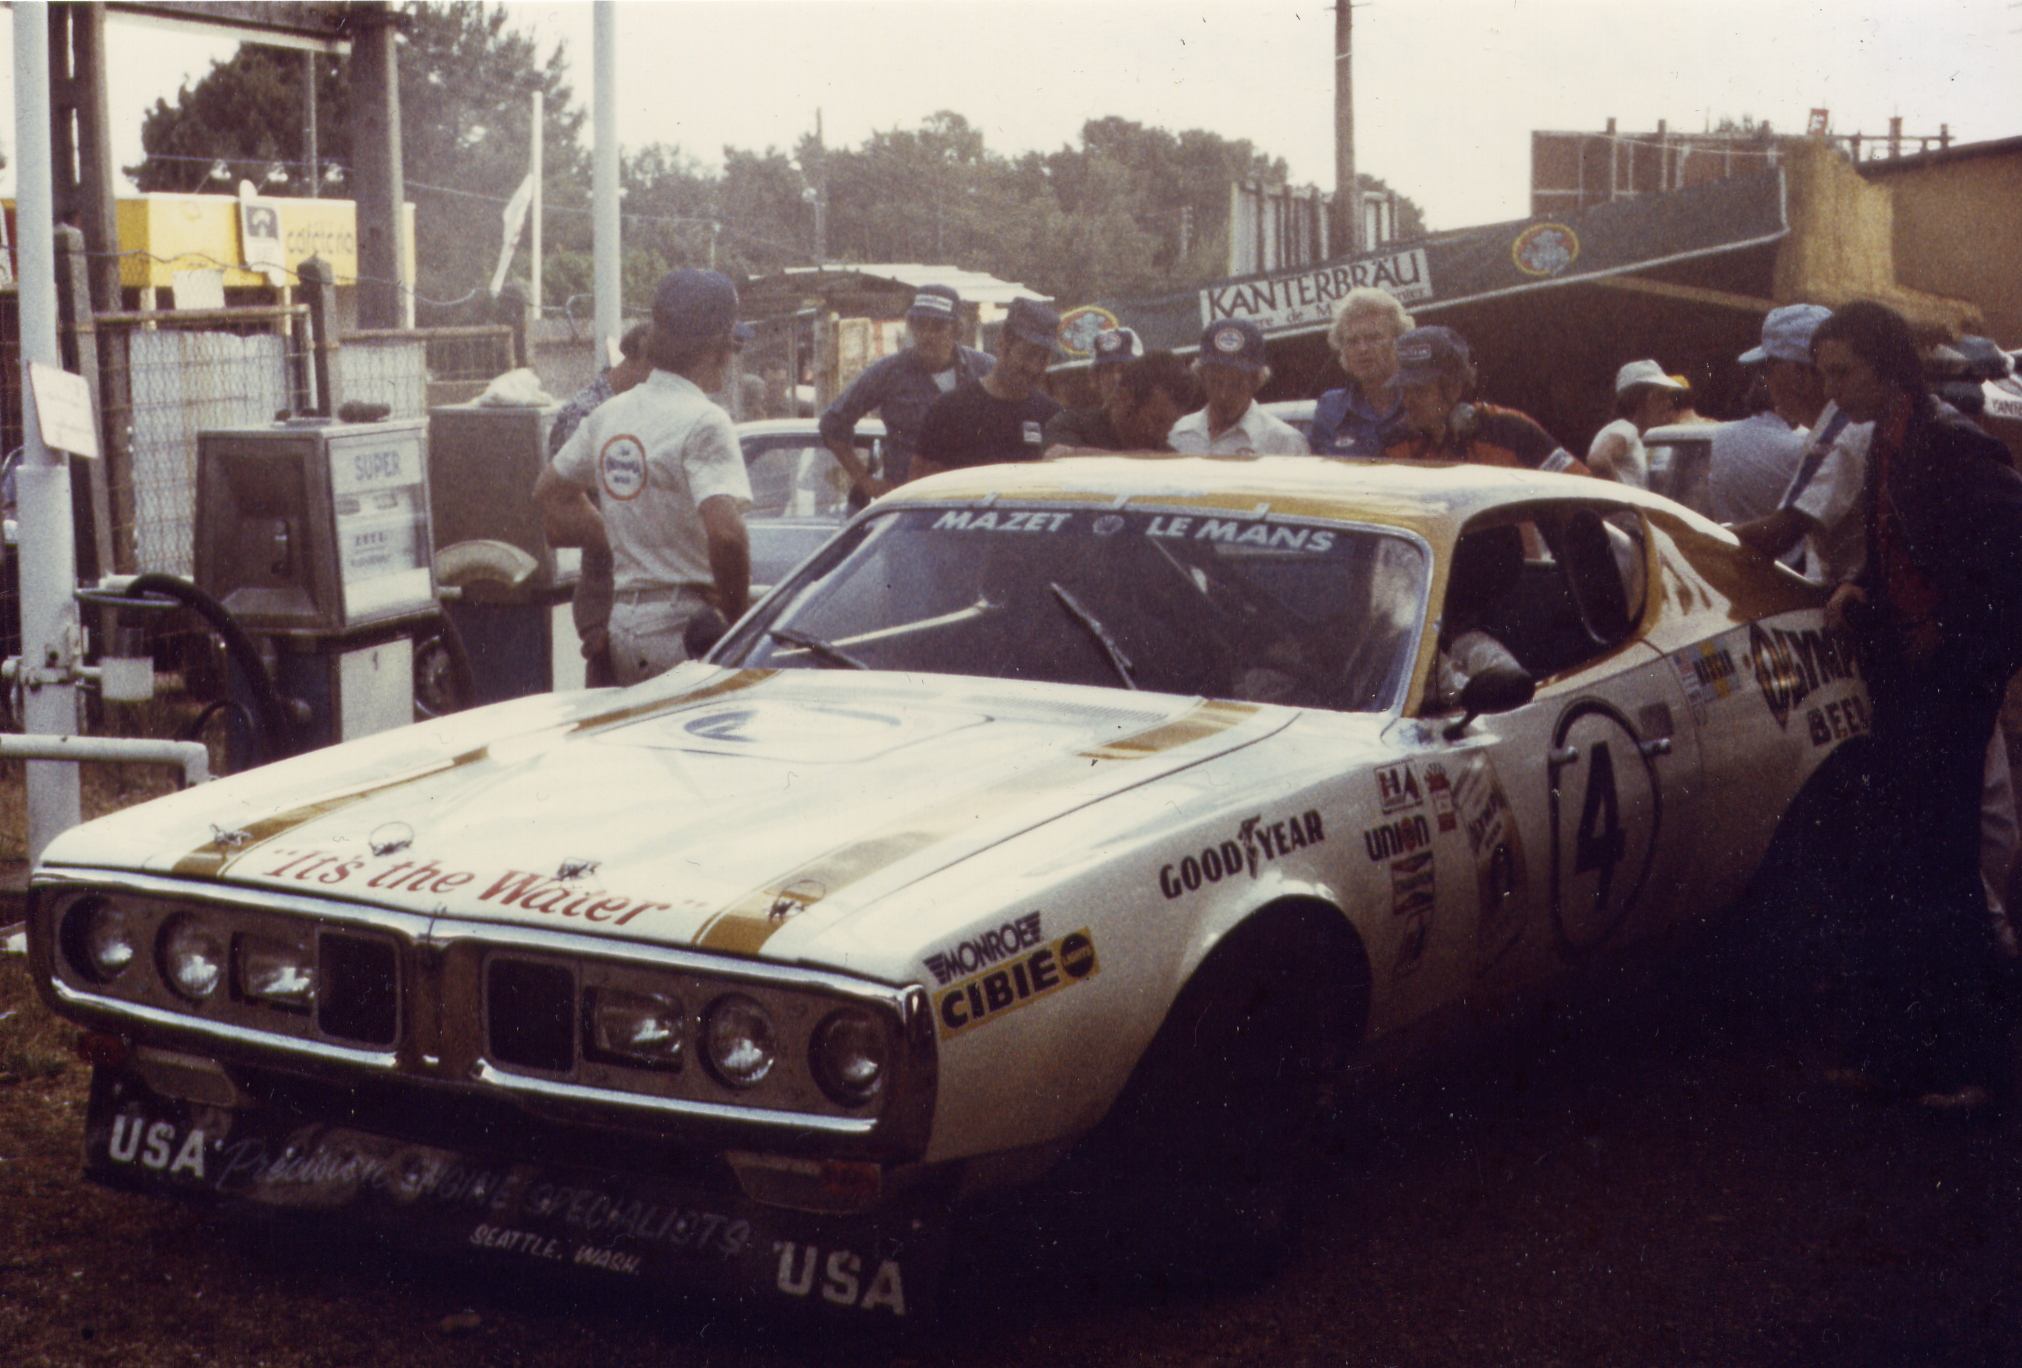 1974 Dodge Charger in the Le Mans pits